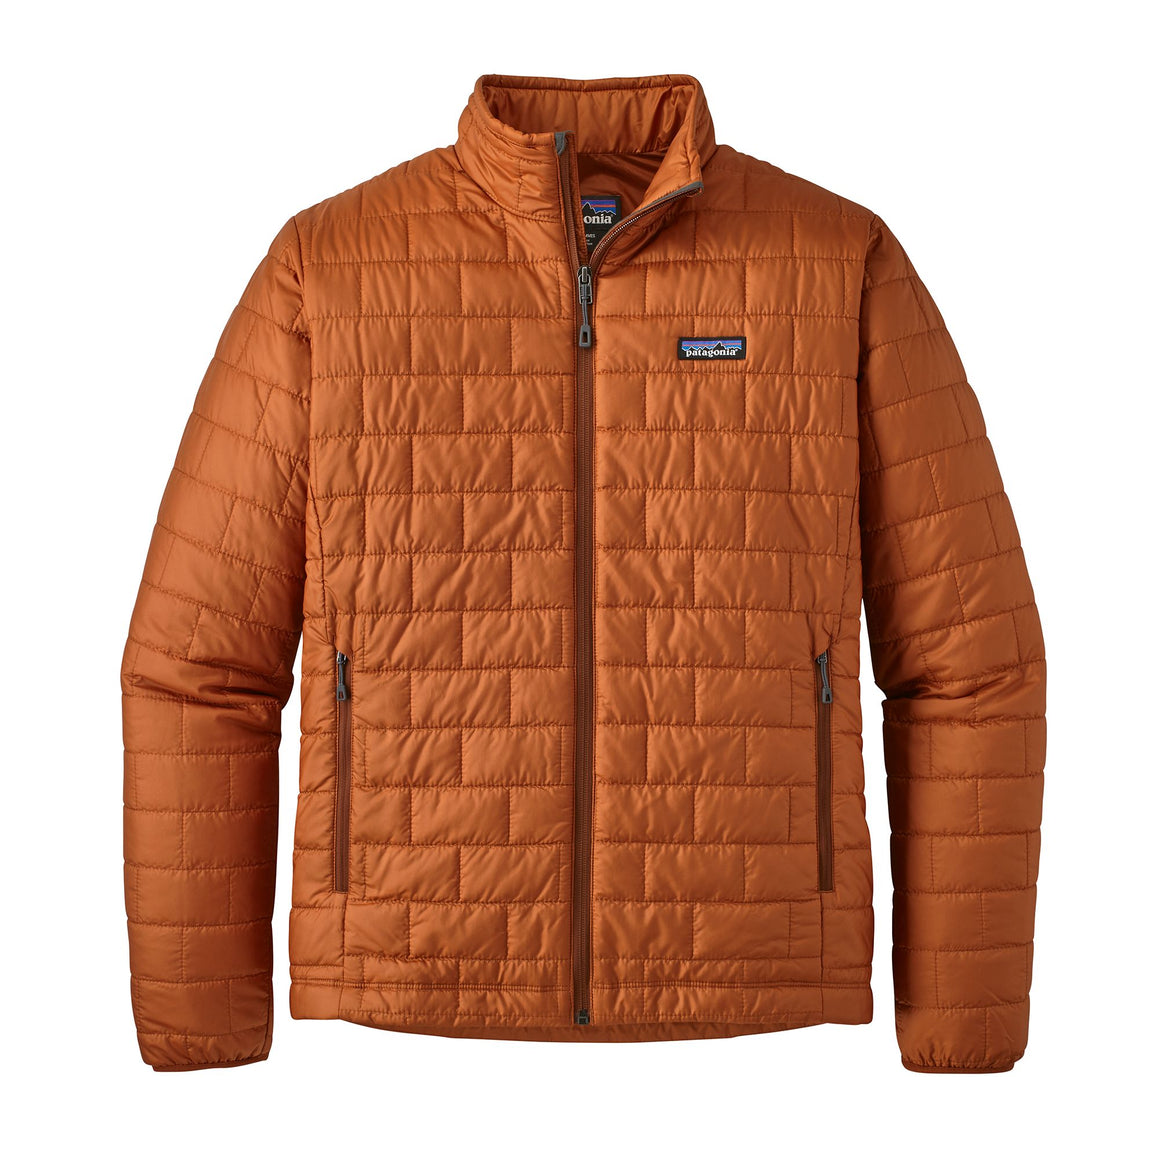 Patagonia Men's Nano Puff Jacket koppar orange